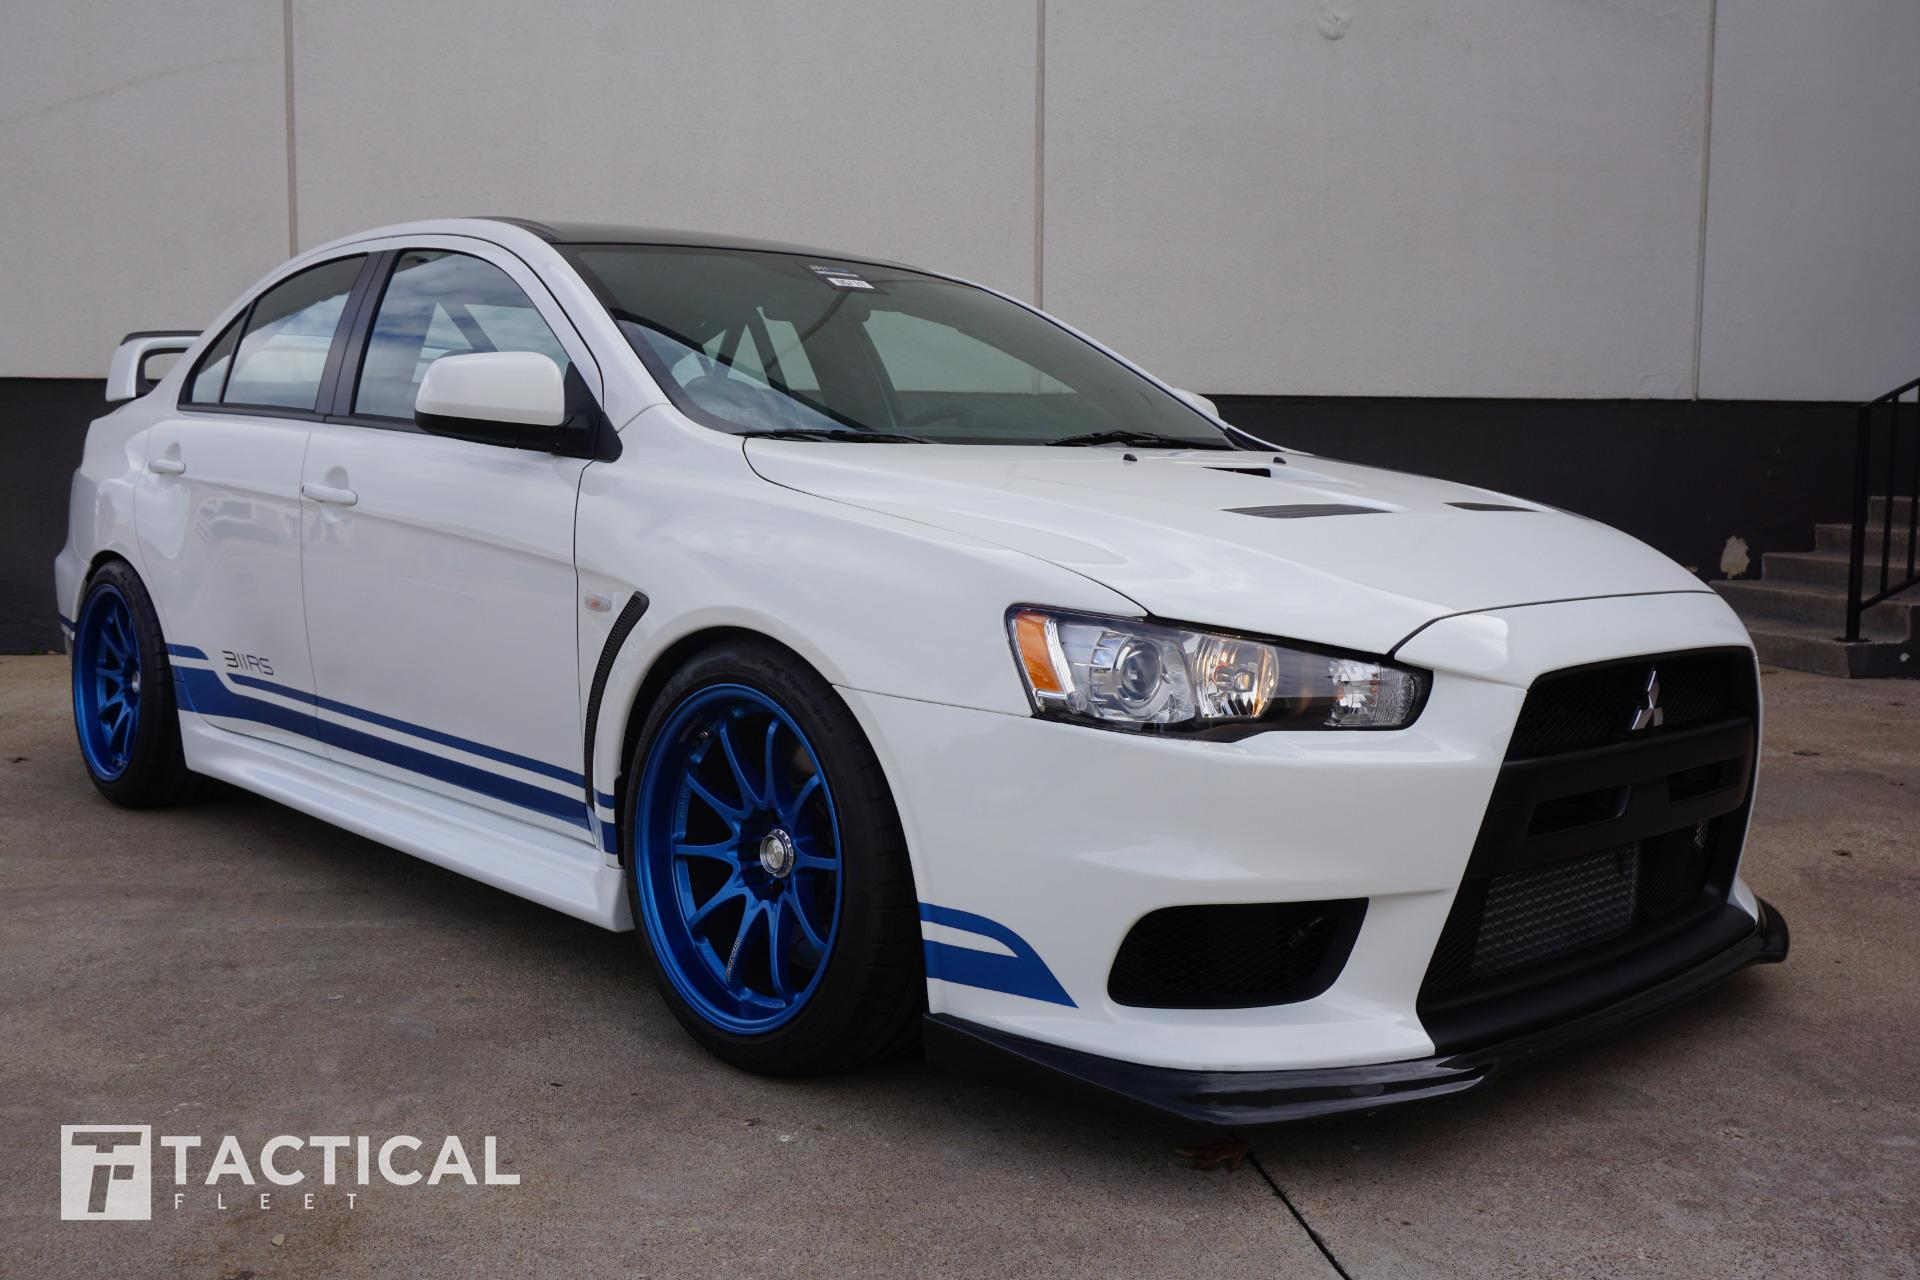 Used 2017 Mitsubishi Lancer Evolution Gsr